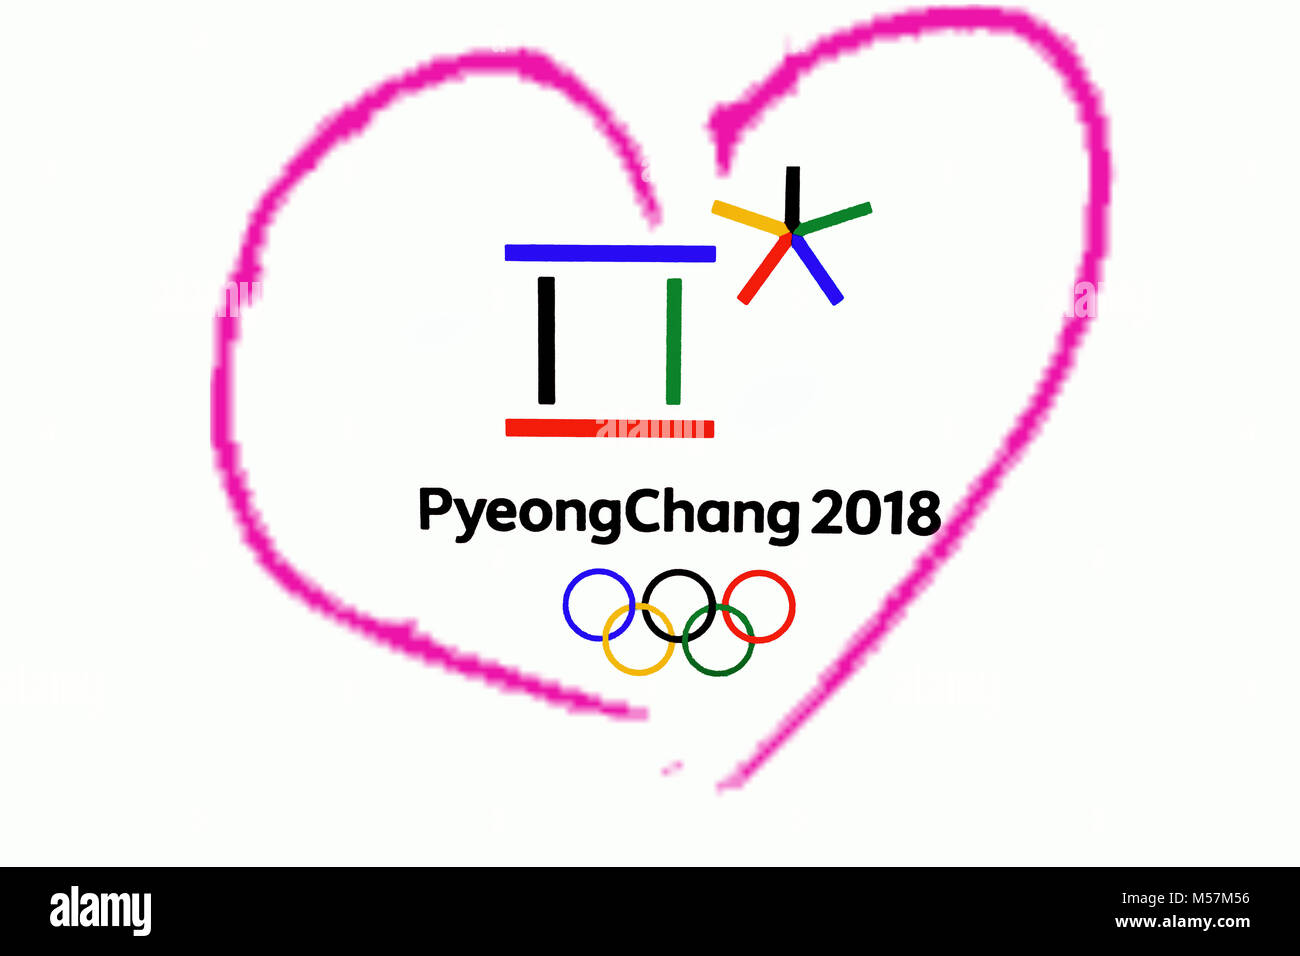 14 december 2017 moscow russia symbols xxiii winter olympic games 14 december 2017 moscow russia symbols xxiii winter olympic games in pyeongchang republic of korea in the pink heart heart biocorpaavc Images